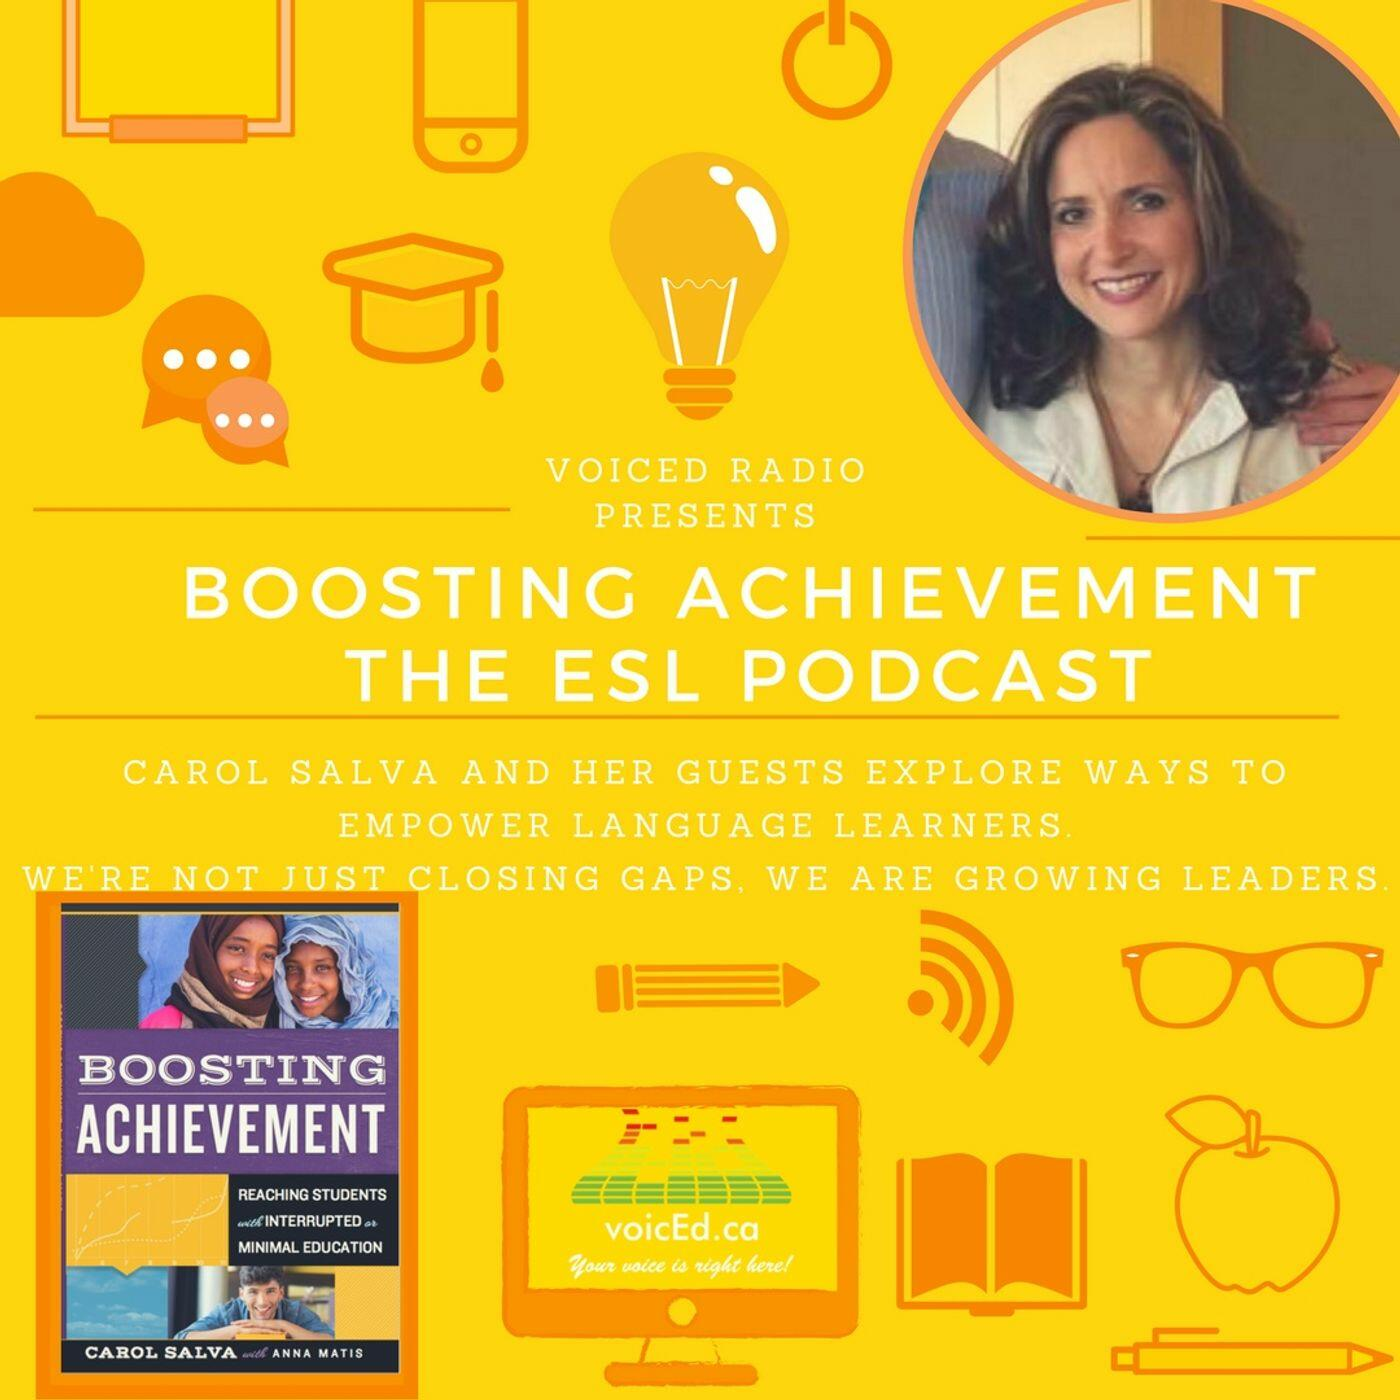 Listen to BAP052 - Aging Out & What We Do Every Day | Boosting Achievement: The ESL Podcast | Podcasts